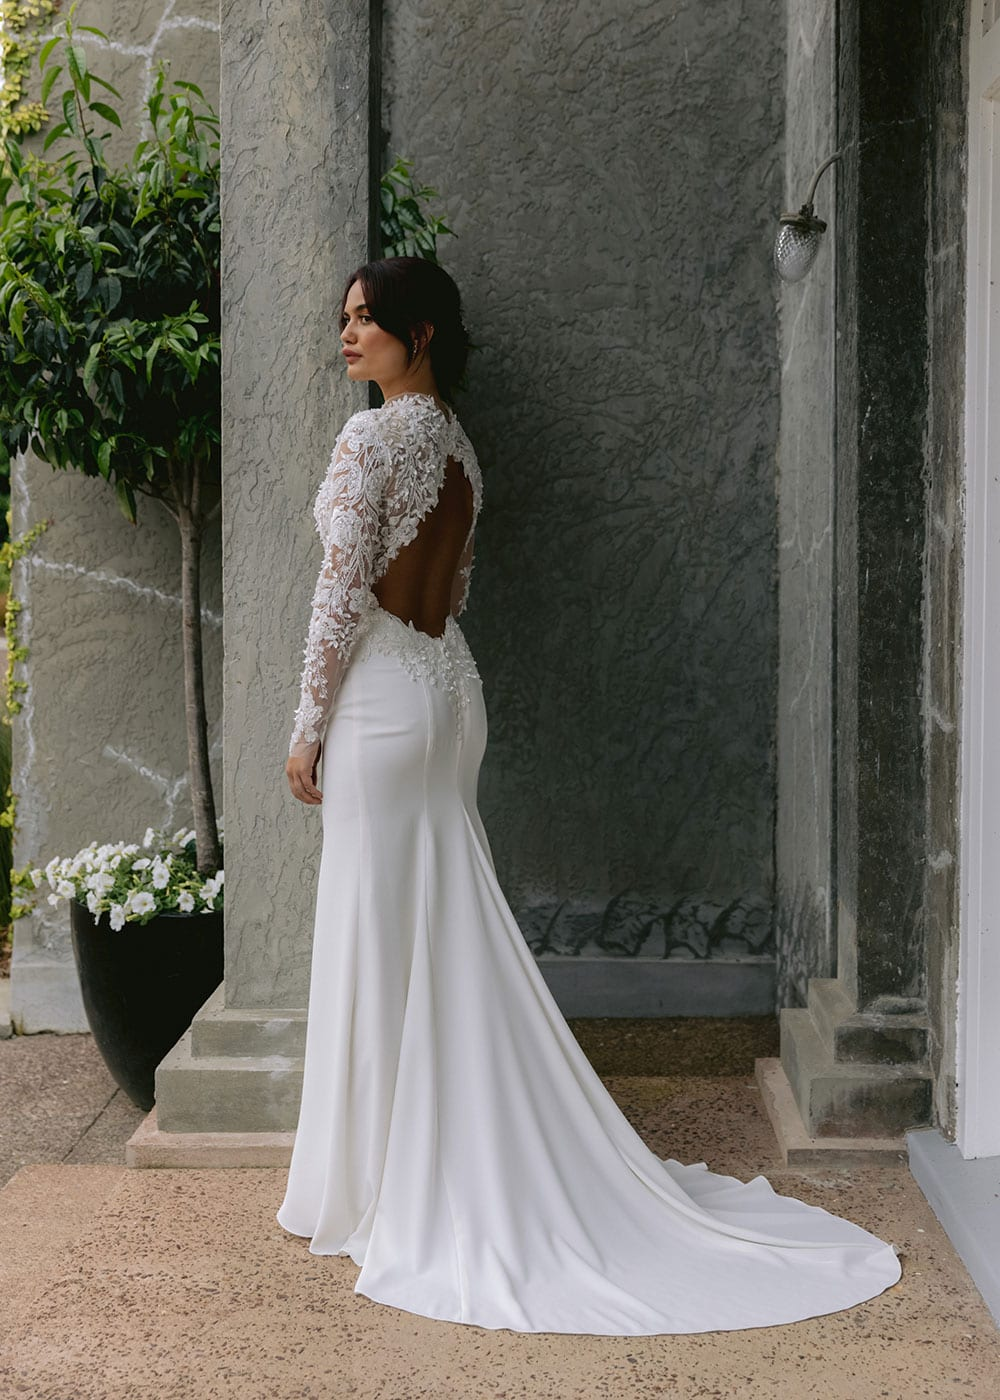 Moana Wedding gown from Vinka Design - Spectacular wedding dress perfect for the modern bride who still wants a classic spark! 3D lace embroidery complemented by a high neckline, fitted sleeves, and stunning low back into a flare train. Model wearing gown showing full length with train behind.